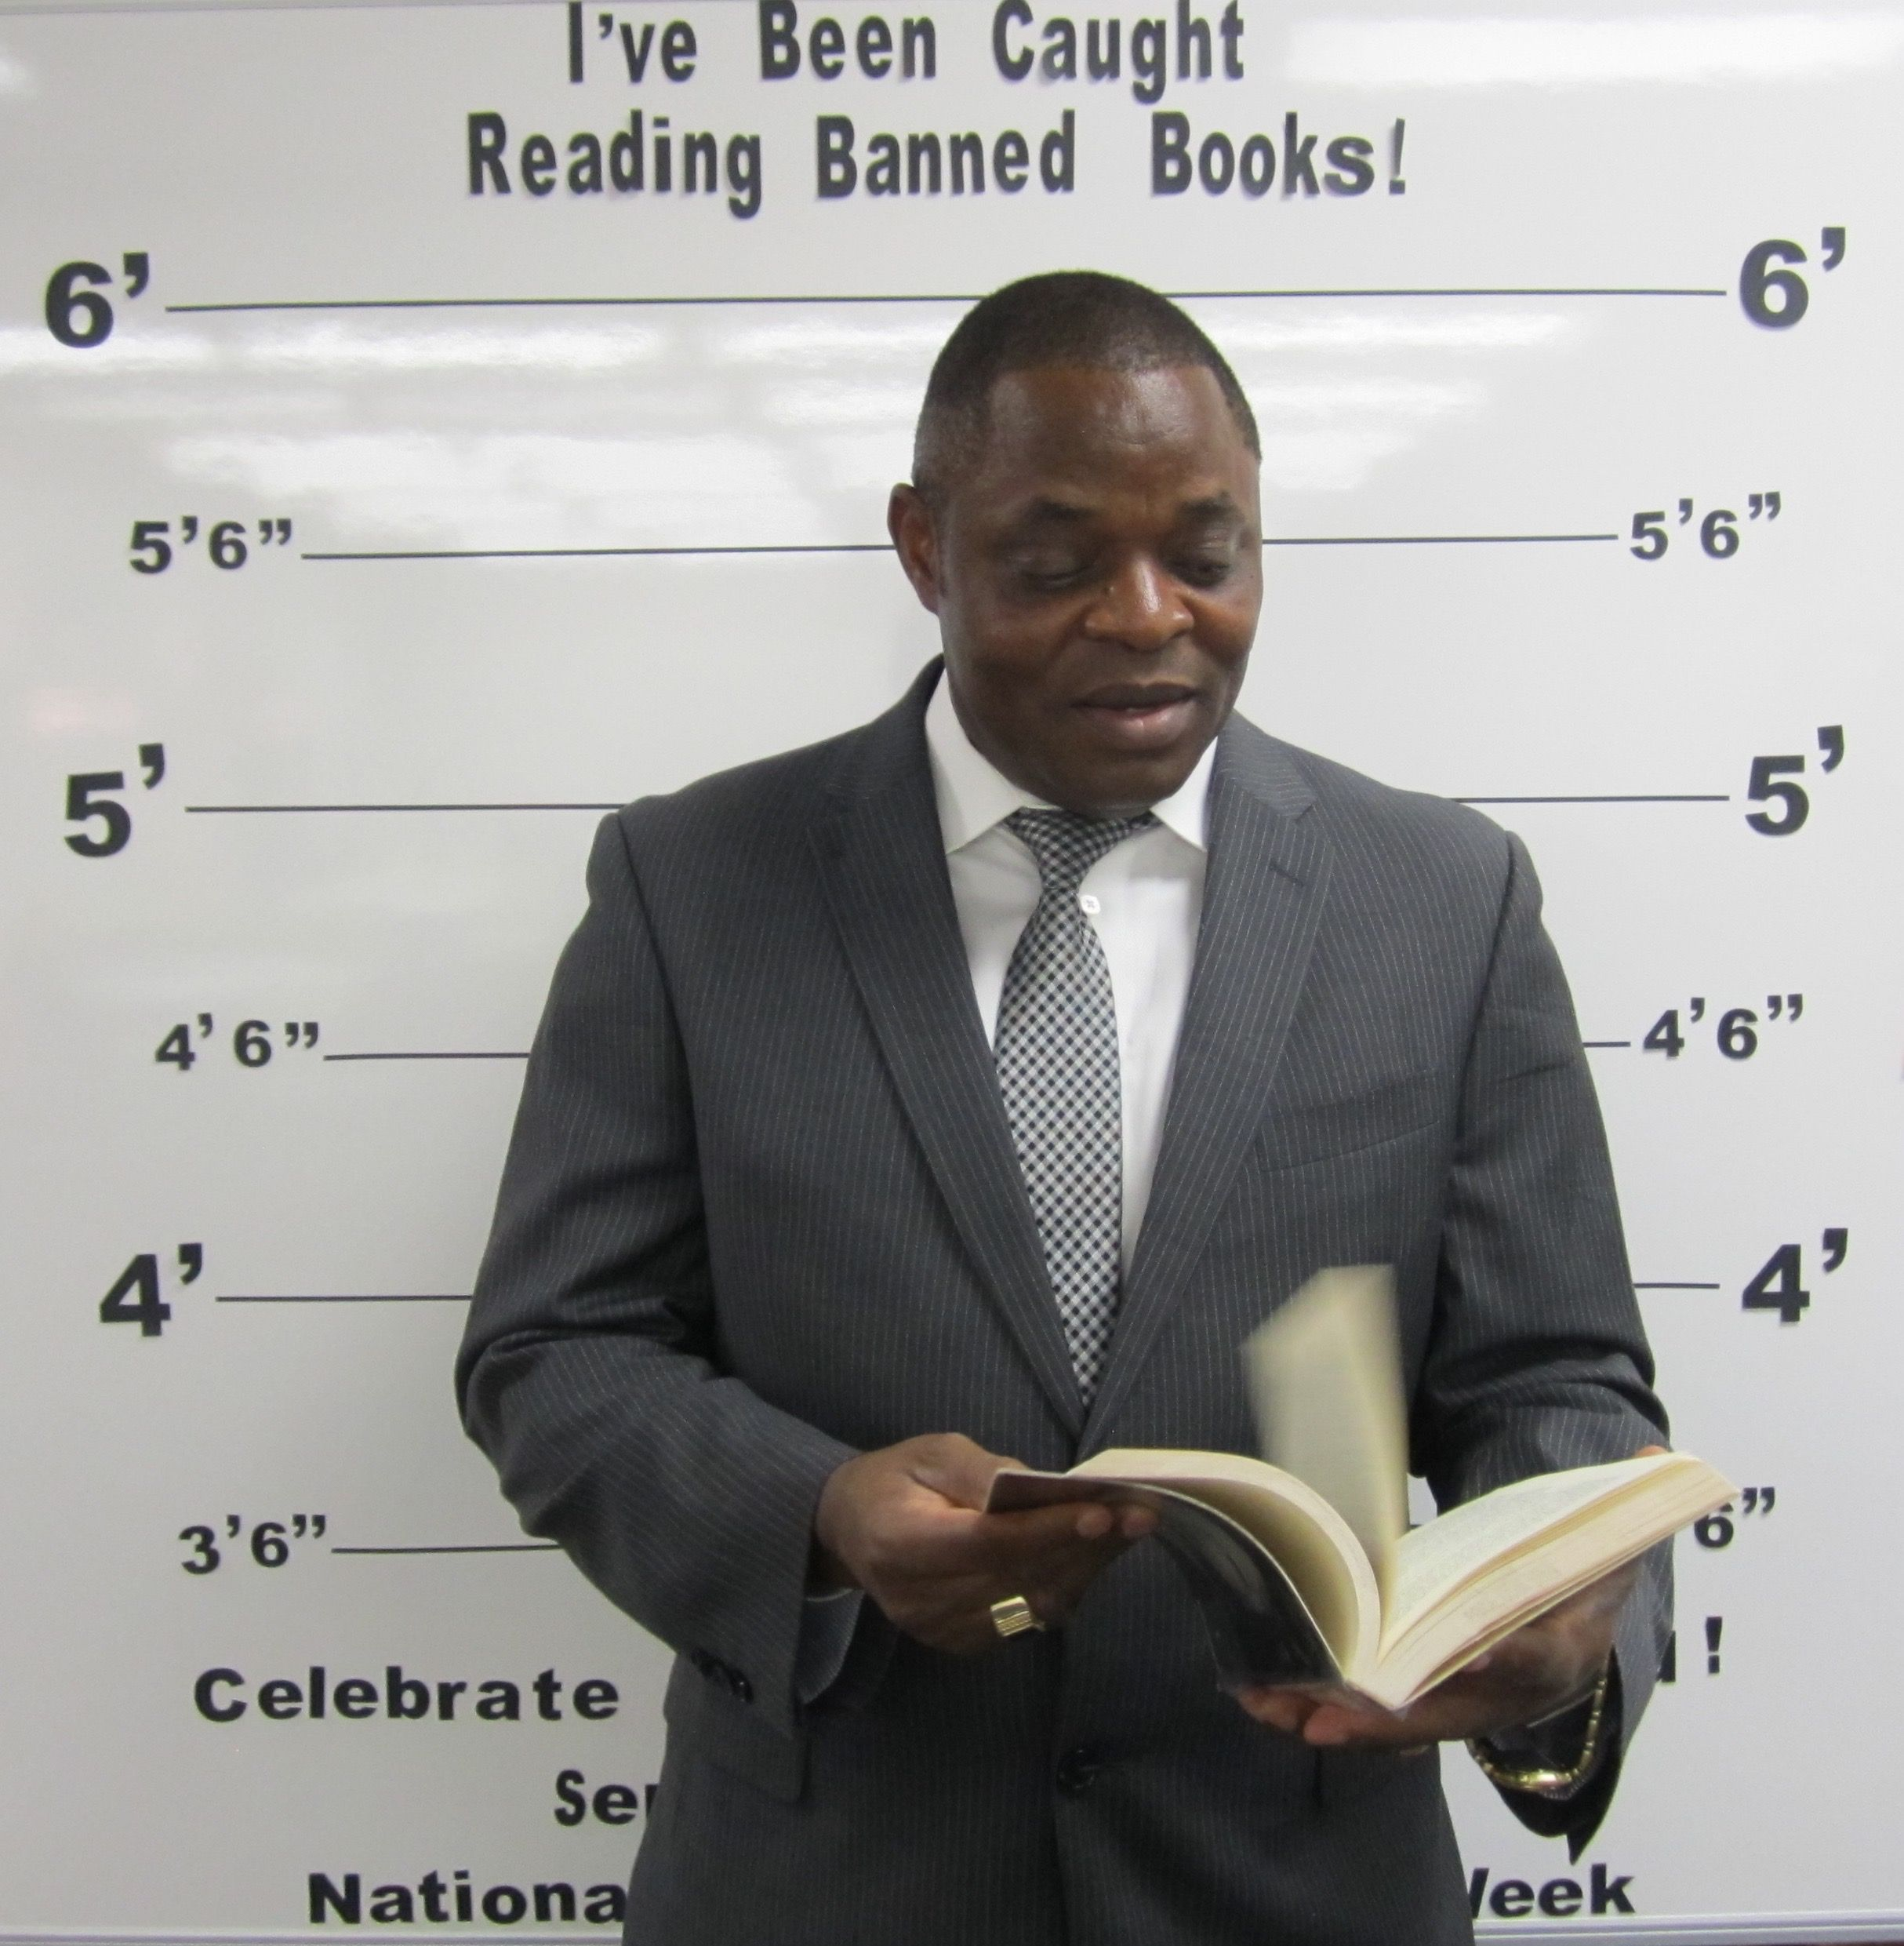 """September 2015 - Banned Books Week - """"I've Been Caught Reading Banned Books!"""" - September 27th thru October 3rd - USU Eastern/Price Vice Chancellor"""